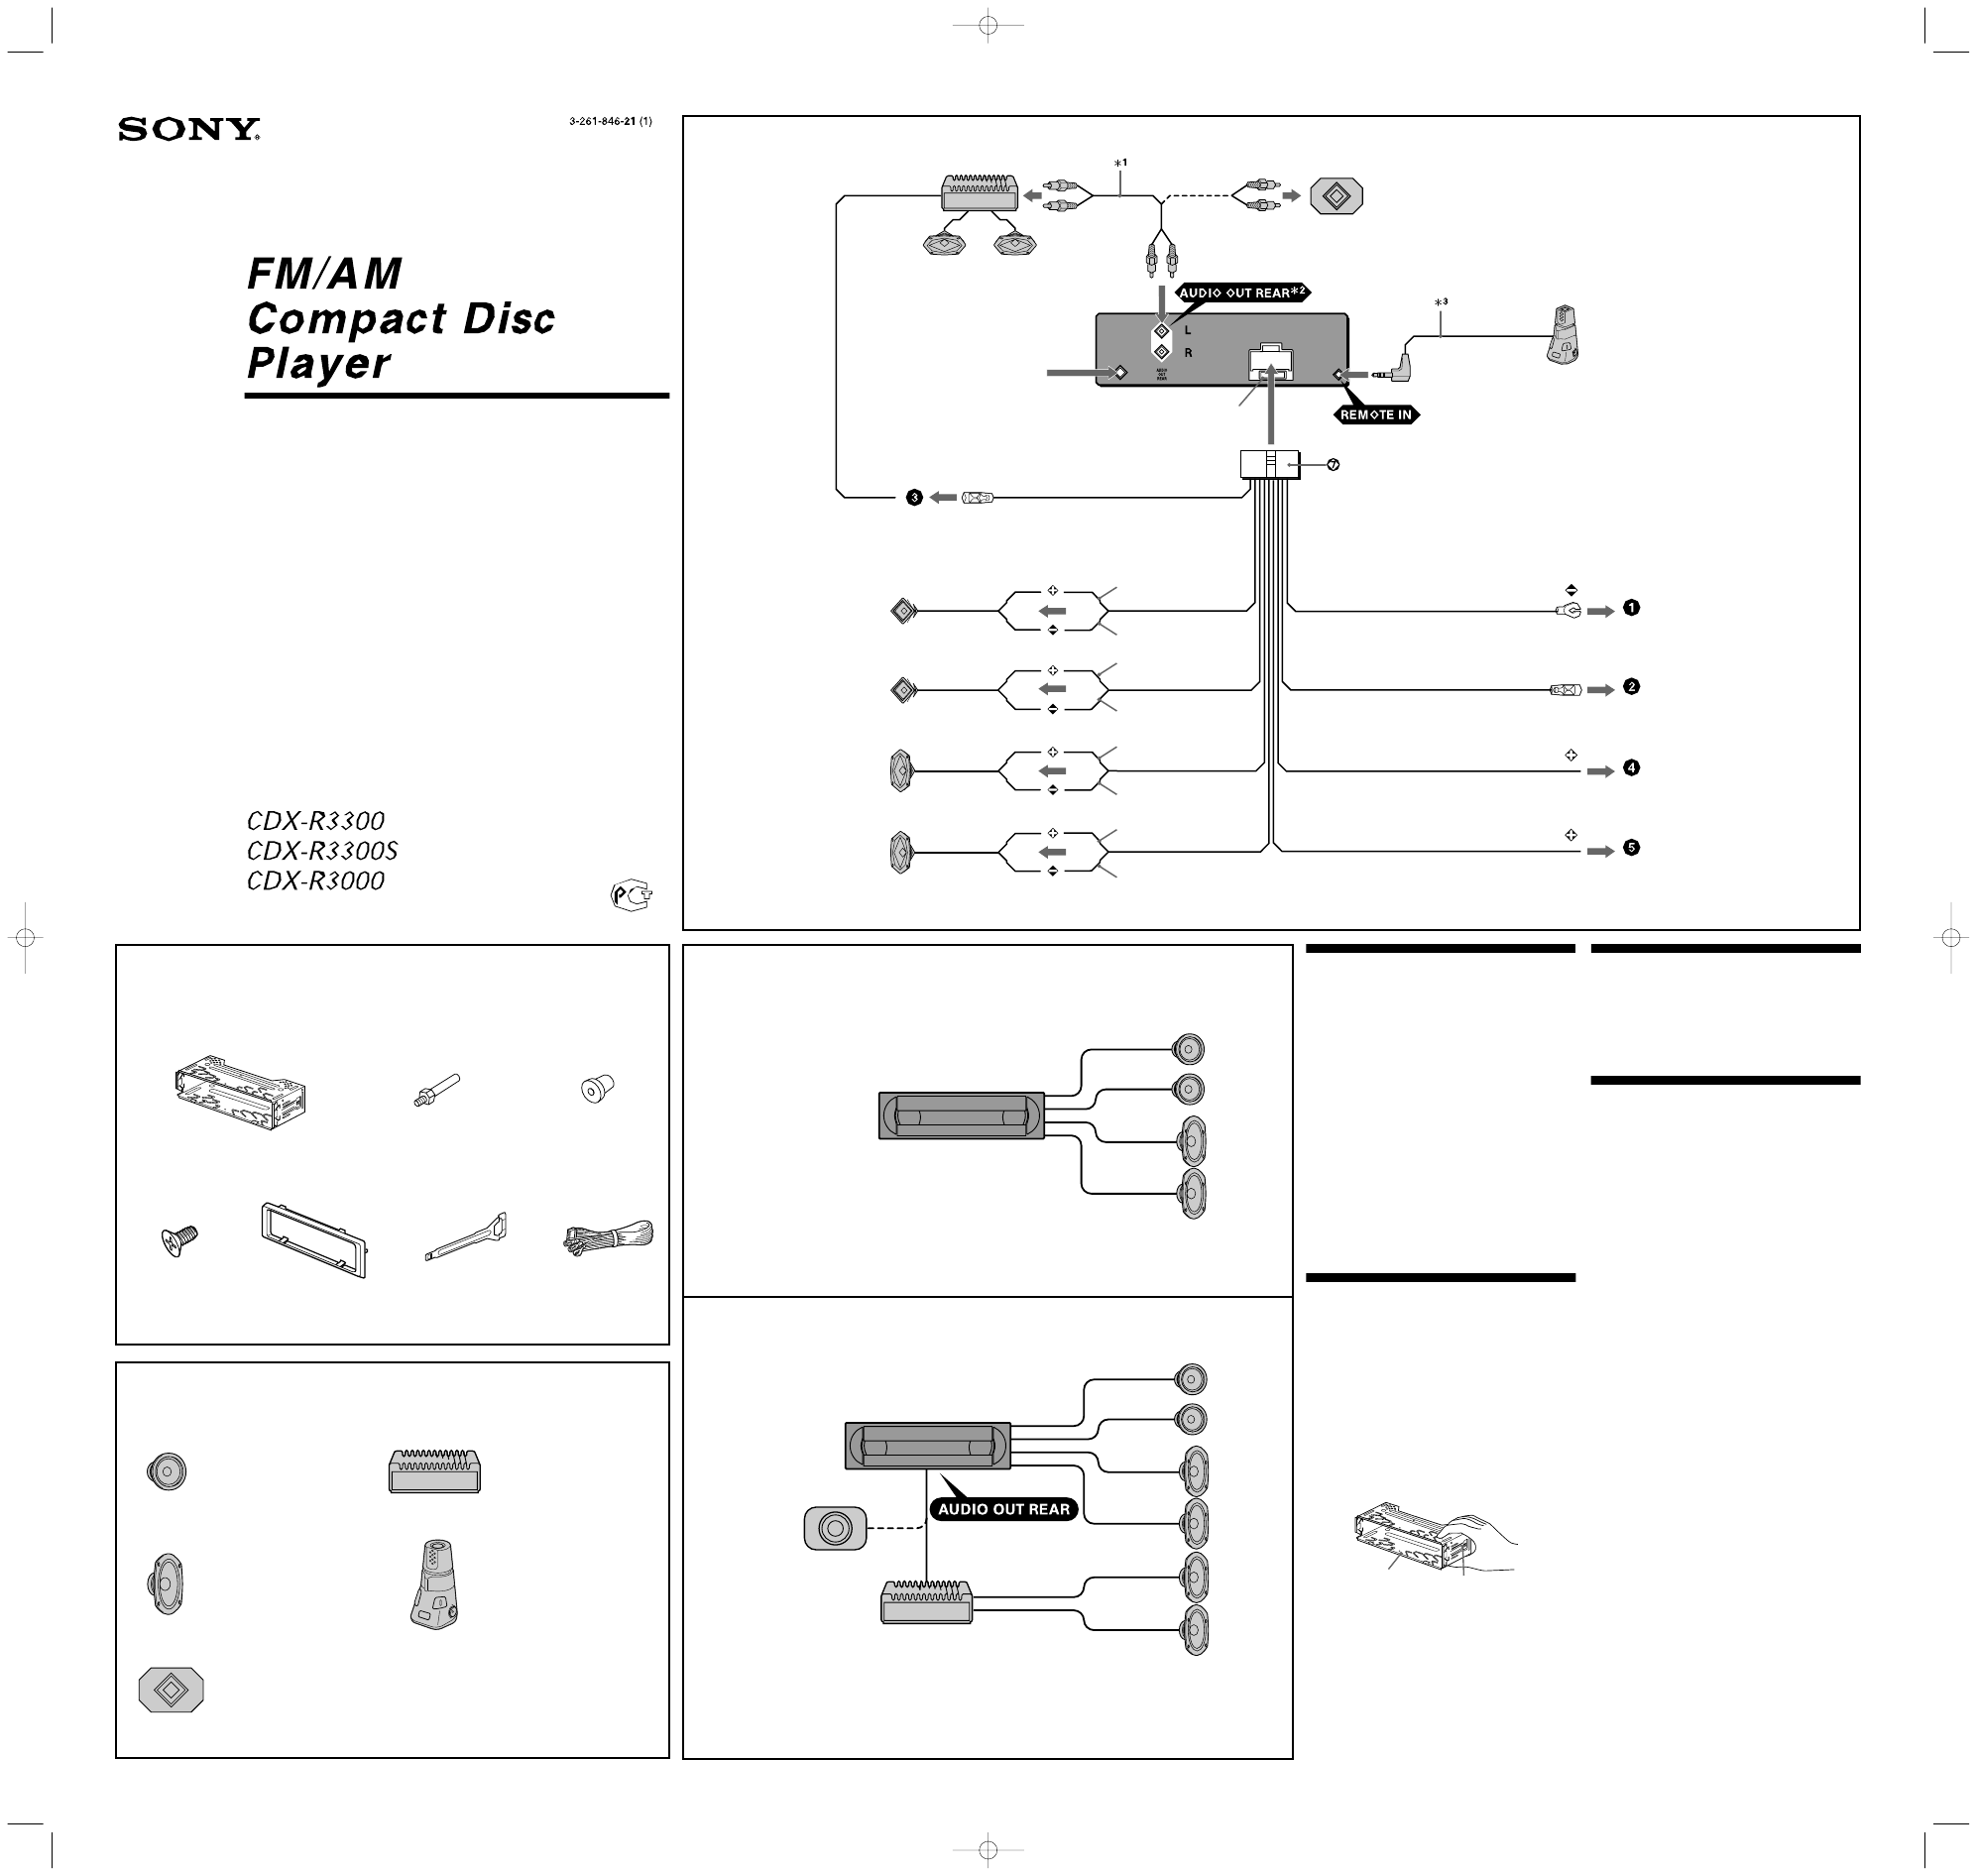 Sony Cdx R3000 Car Radio Wiring Diagram